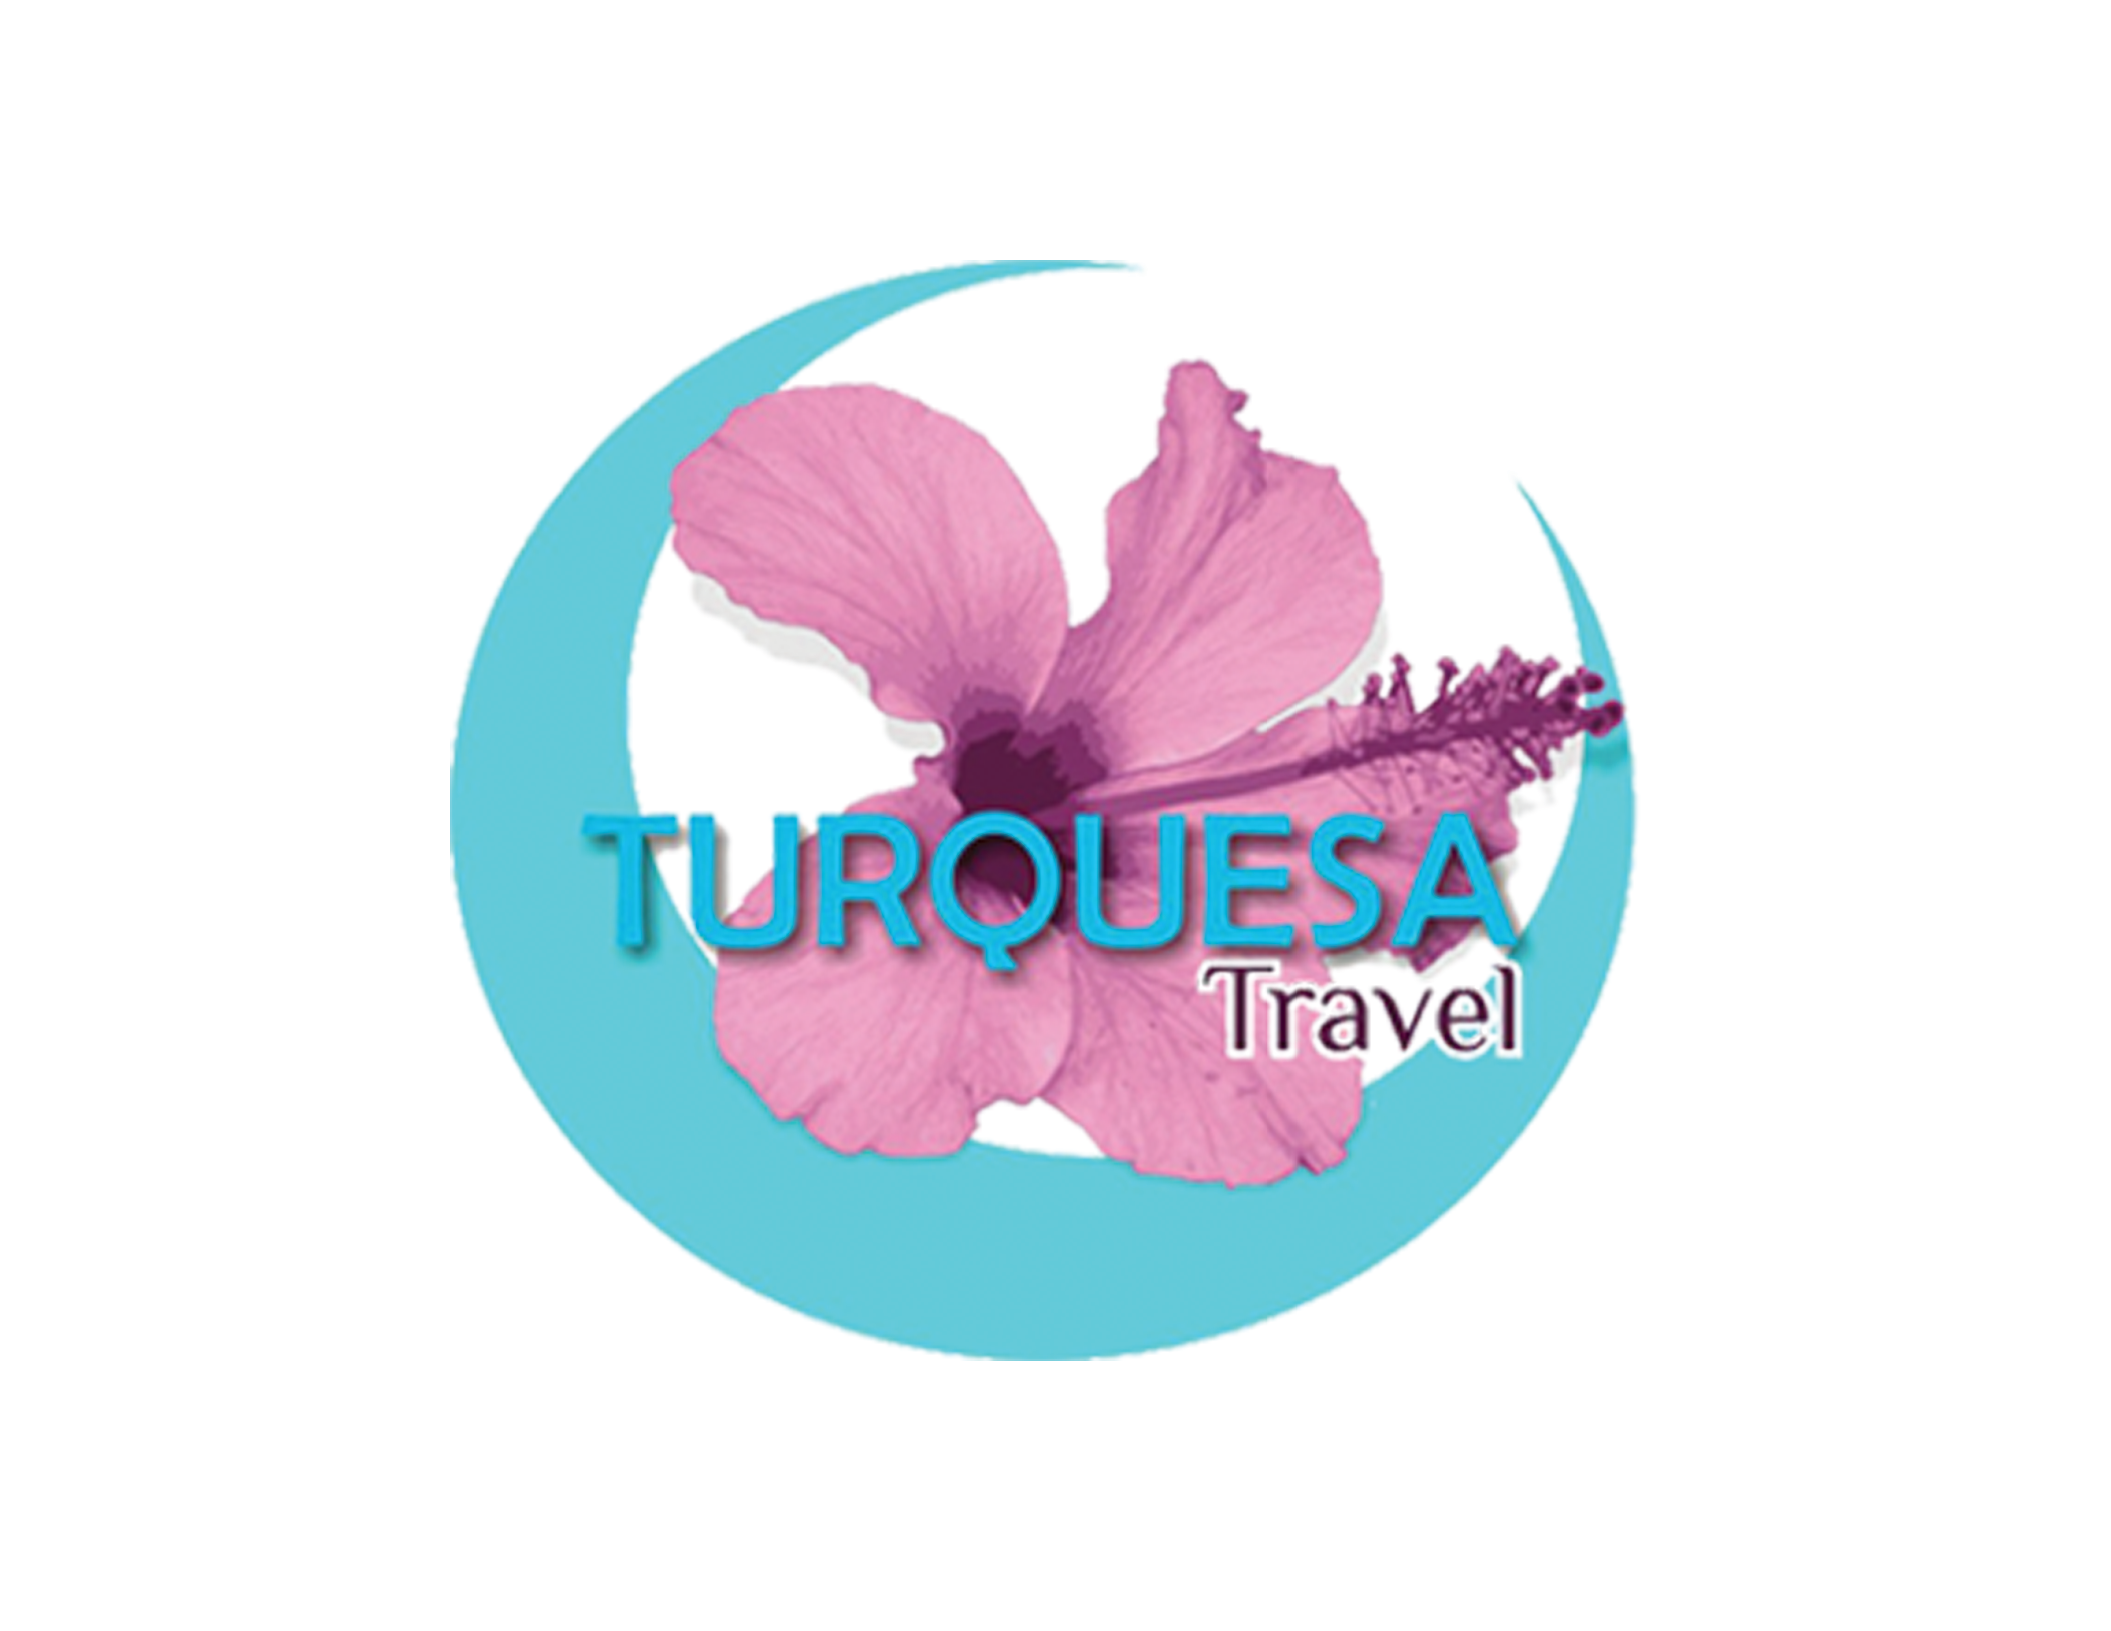 TURQUESA TRAVEL